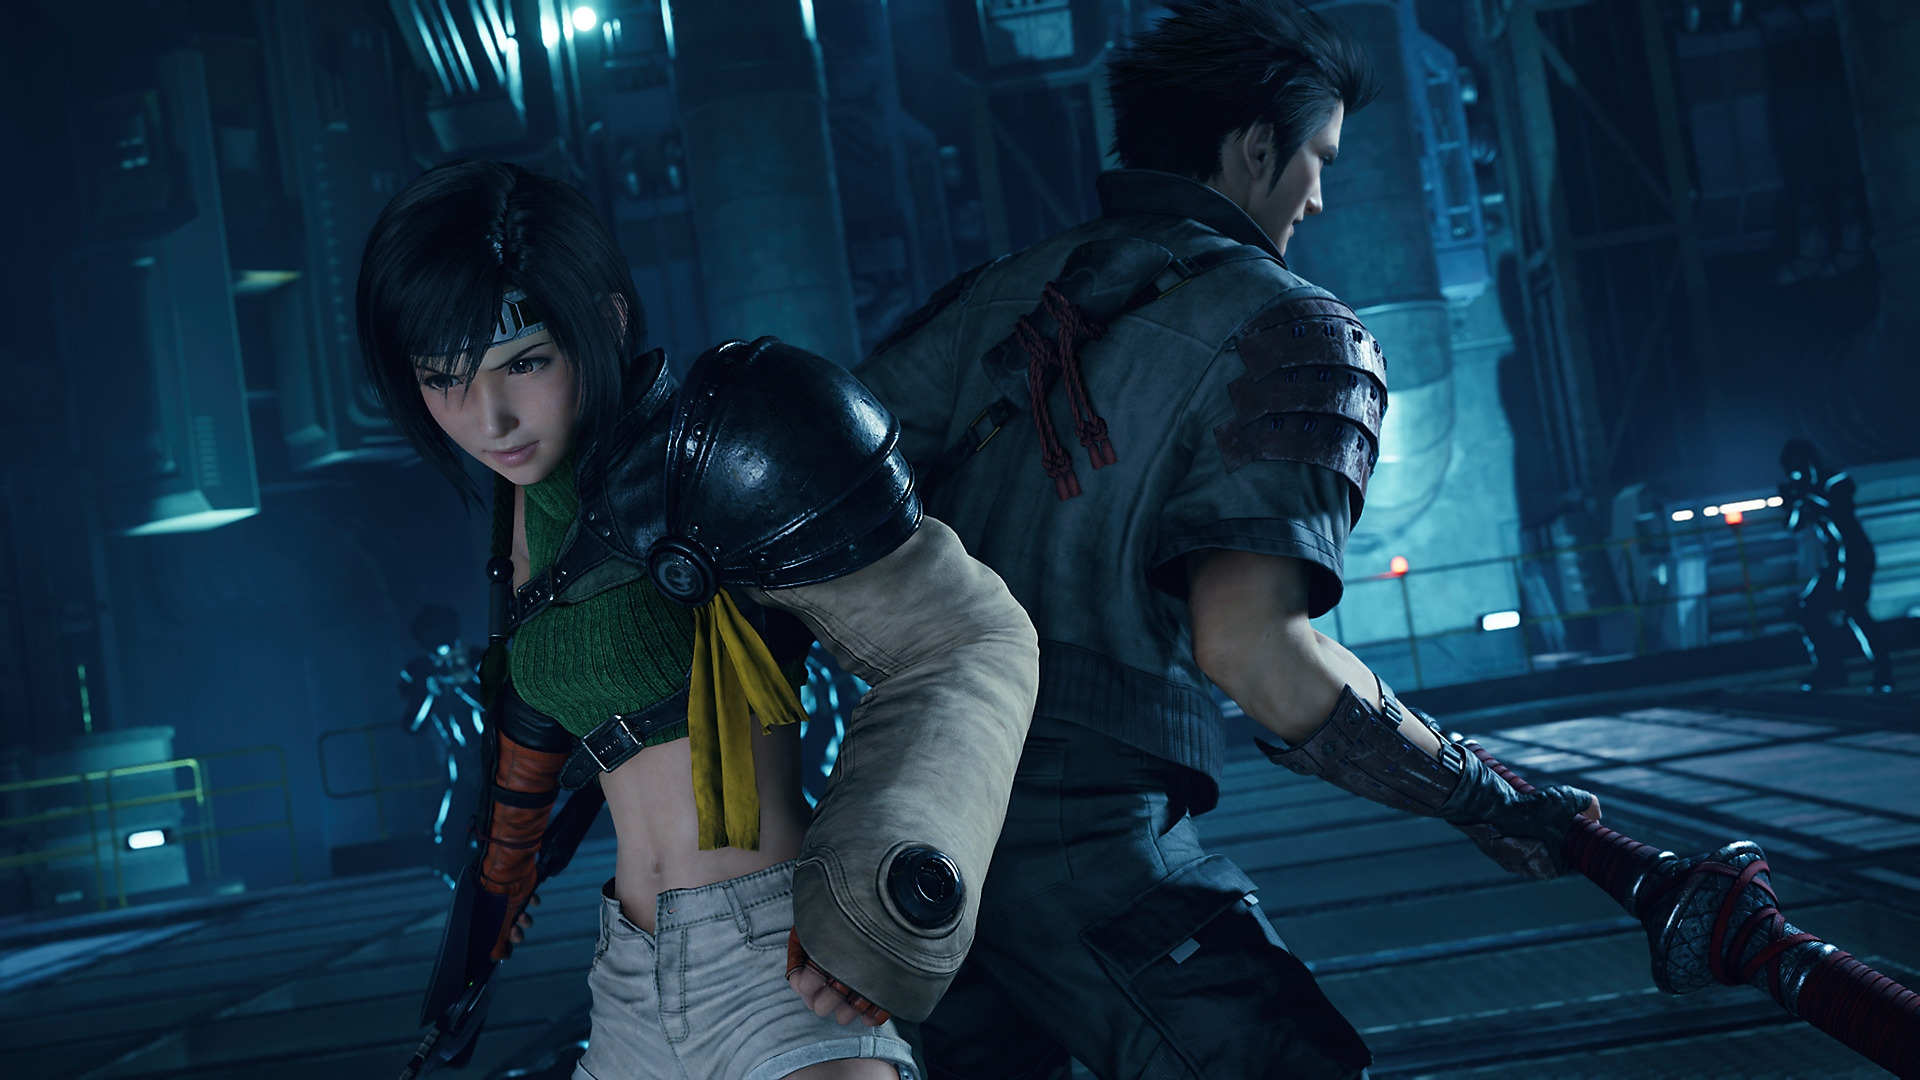 Final Fantasy VII Remake Intergrade - Captura de pantalla de galería 1